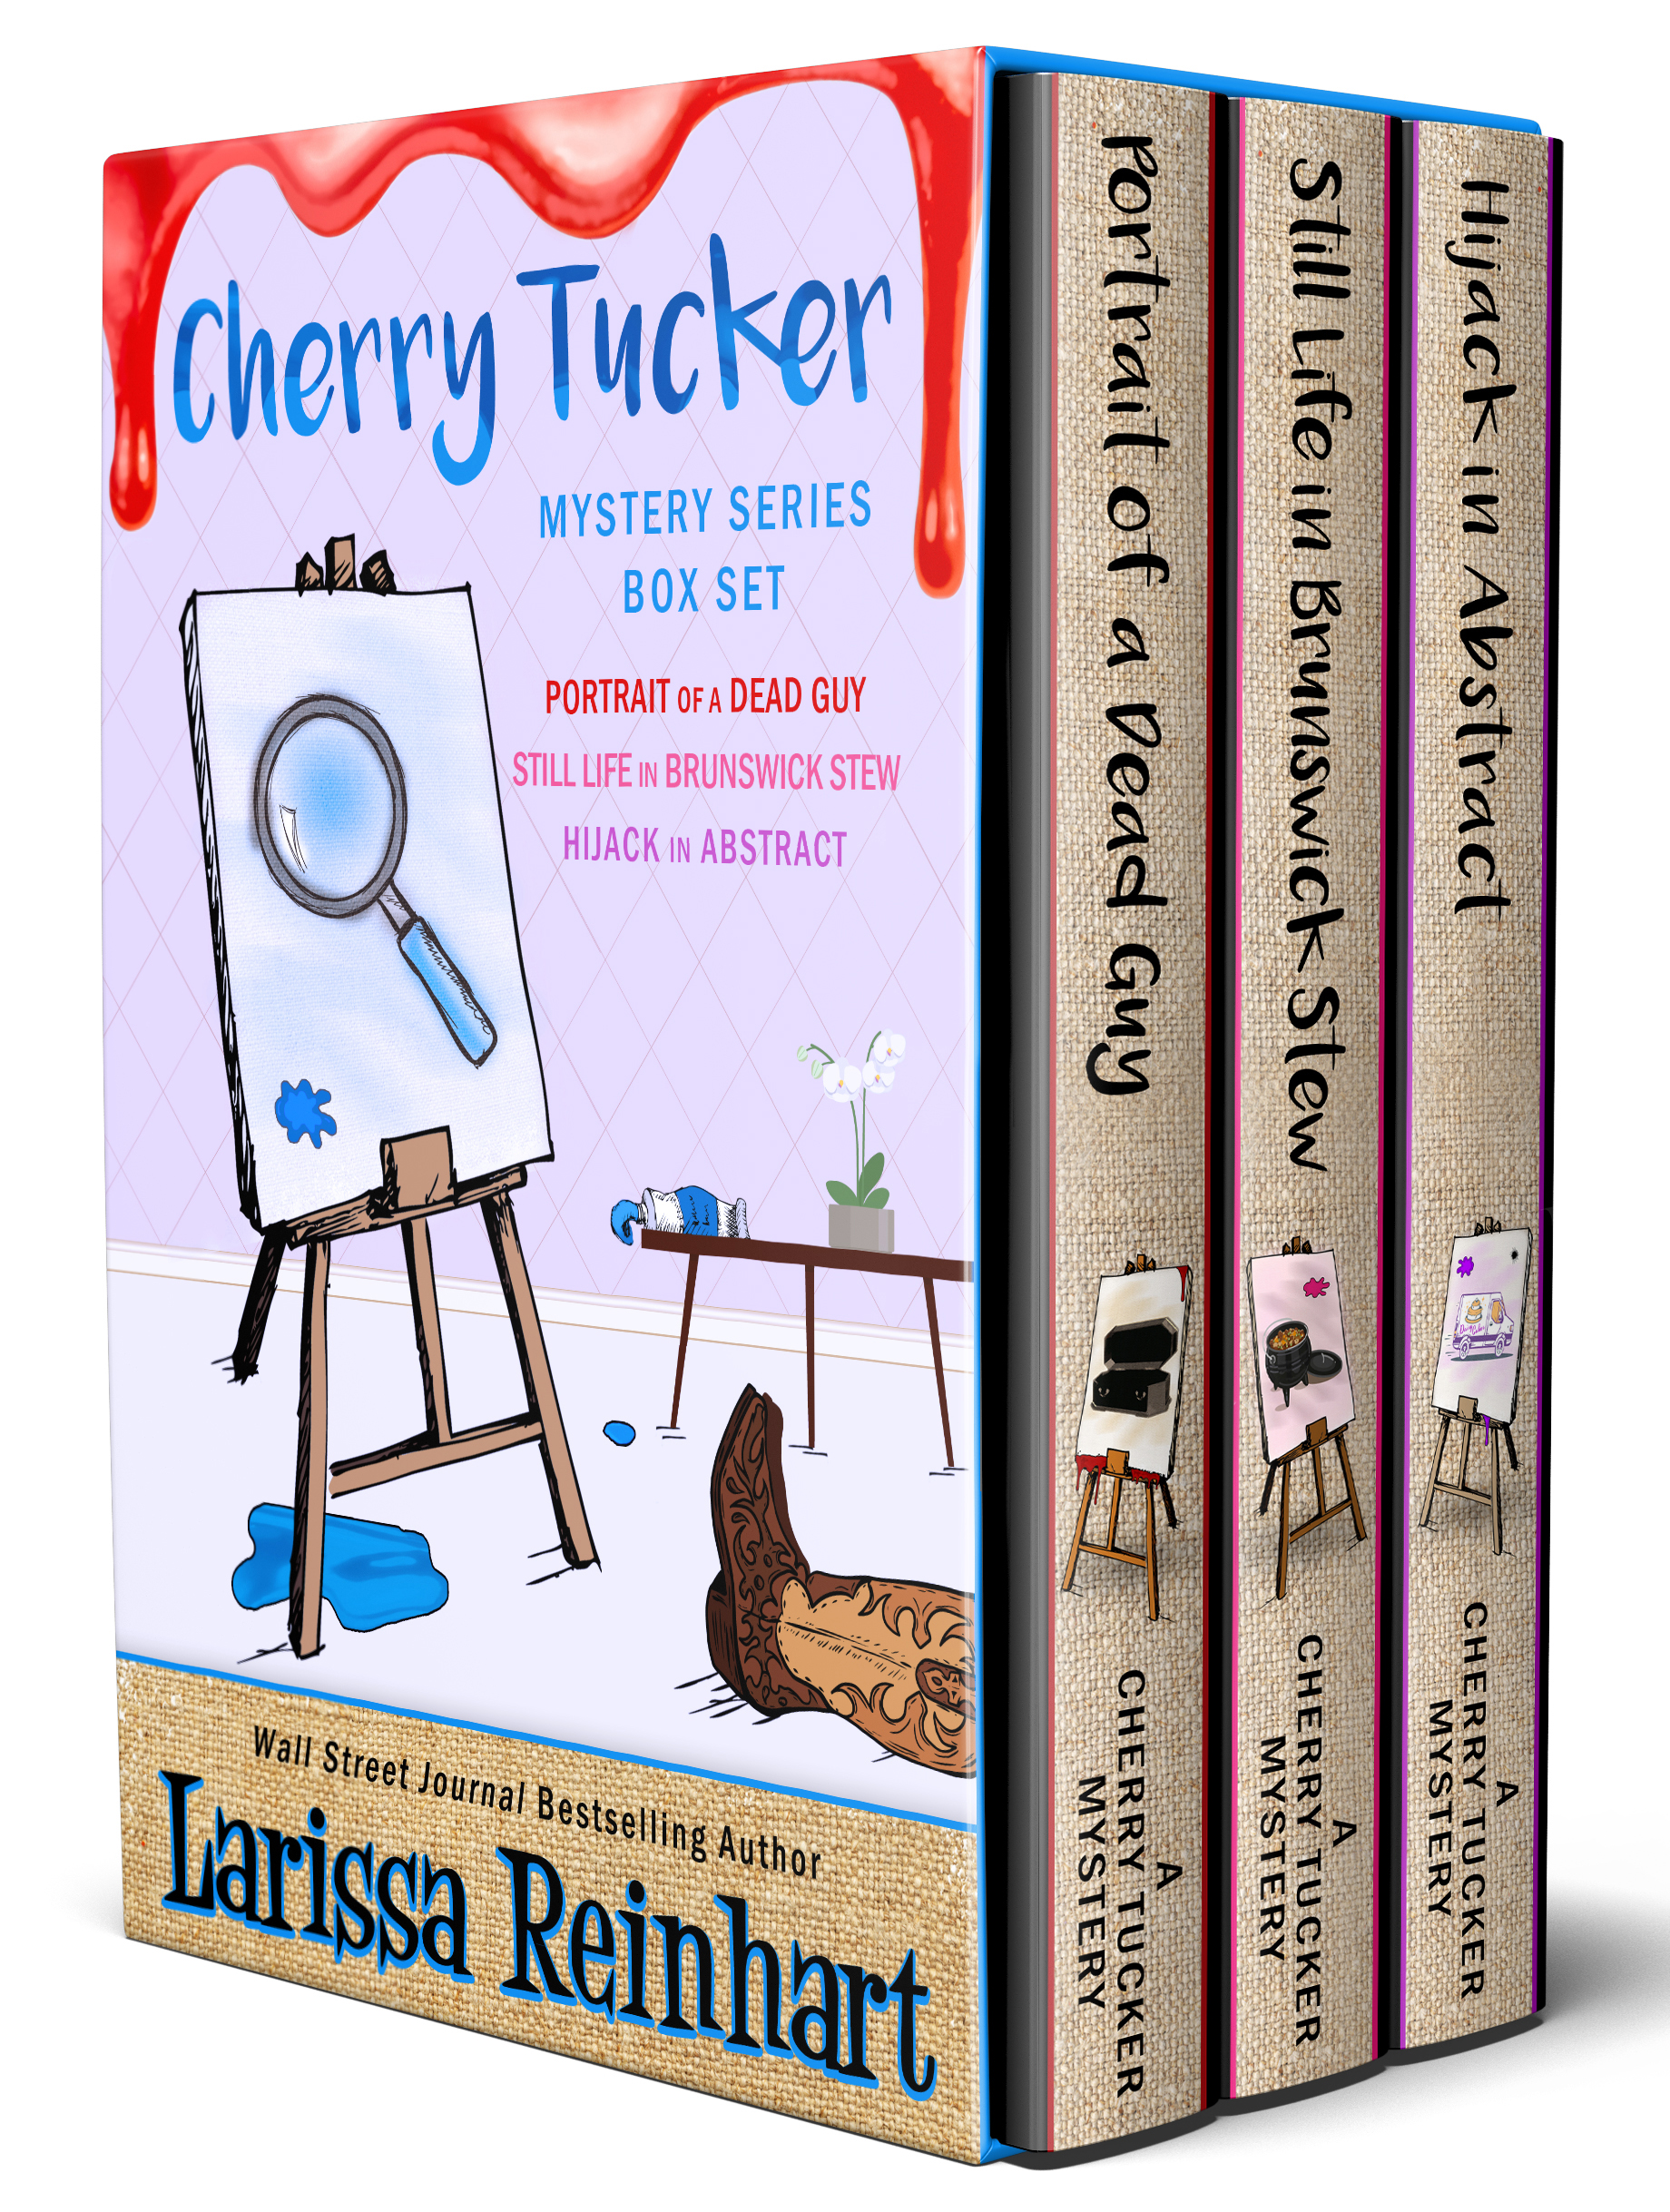 Cherry Tucker Mystery Series Box Set 1